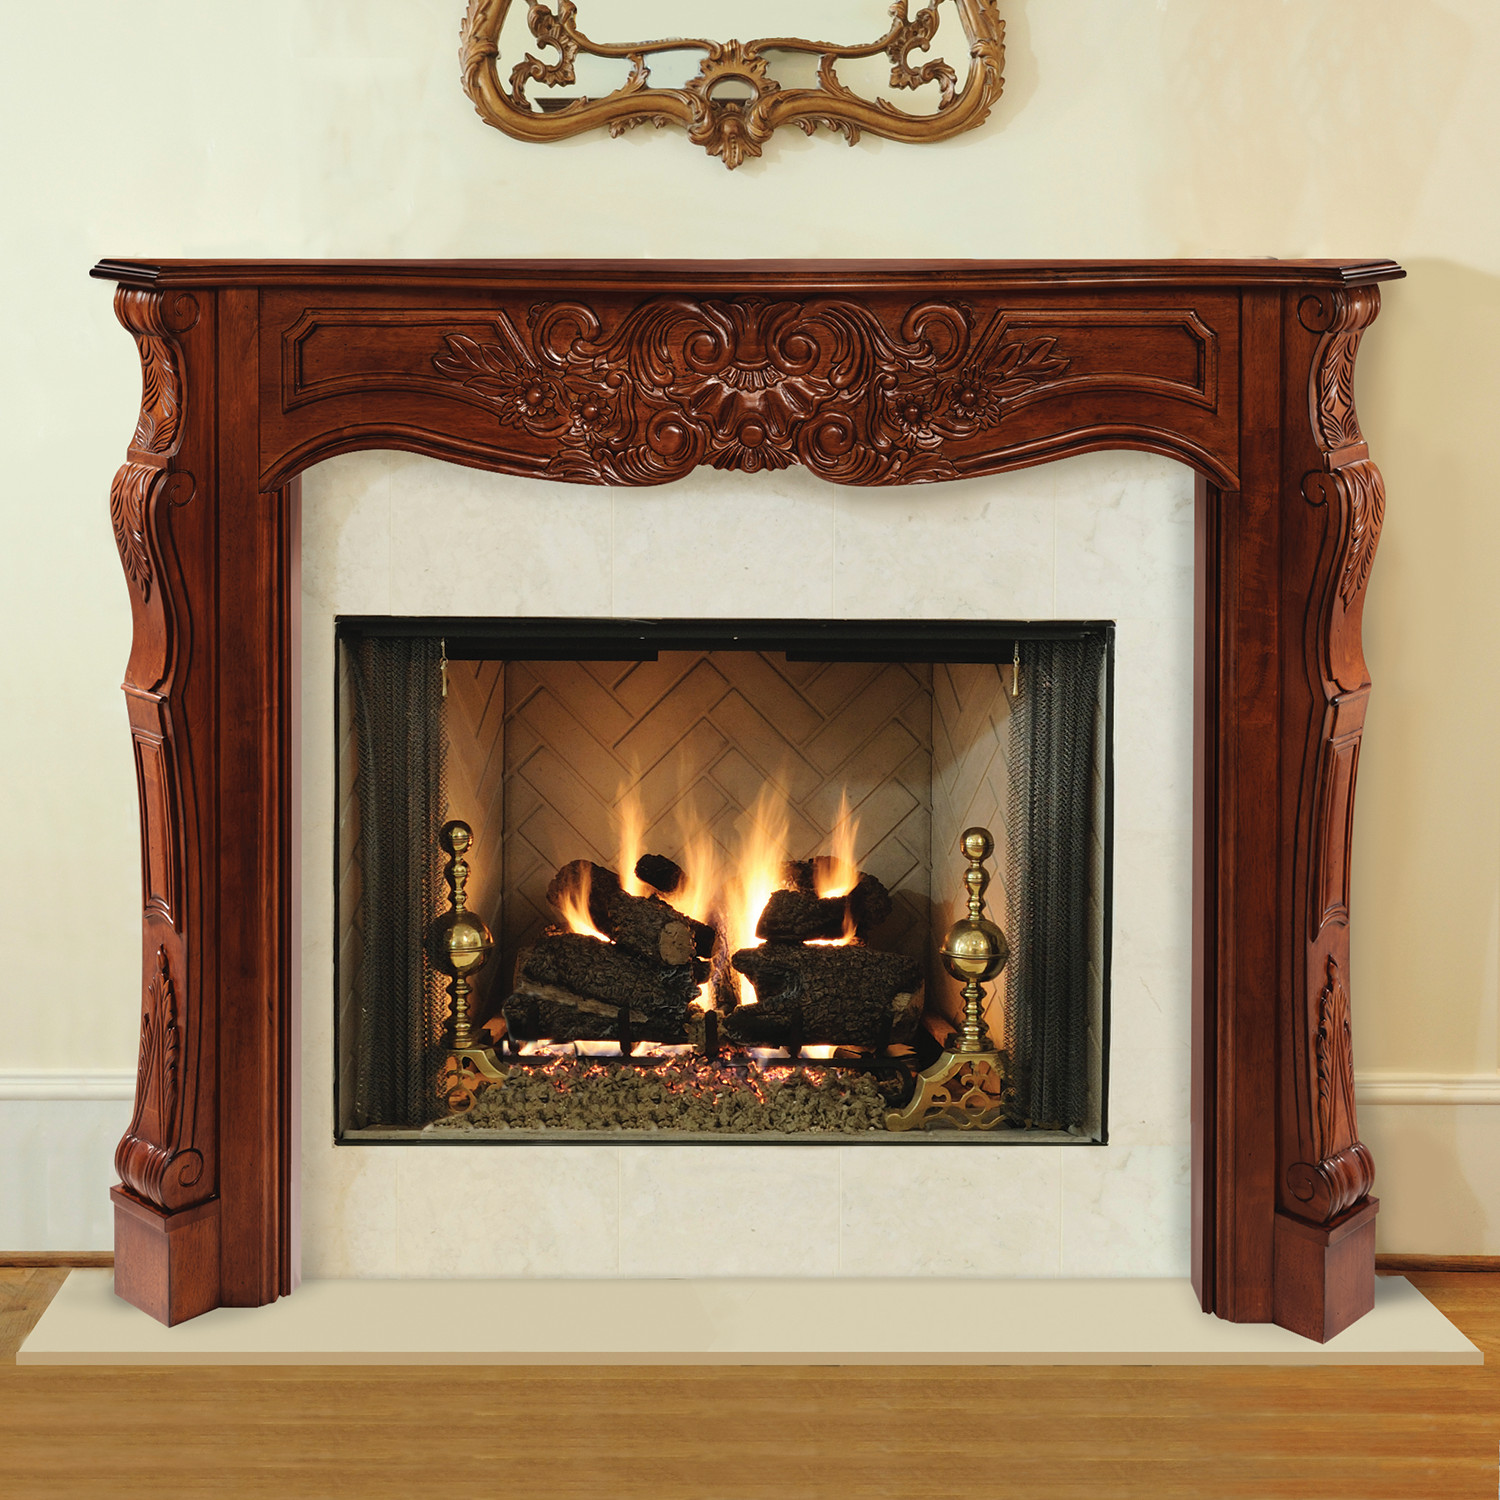 Best ideas about Fireplace Mantel Shelf . Save or Pin Amazon Pearl Mantels 412 60 50 Shenandoah Pine 60 Now.